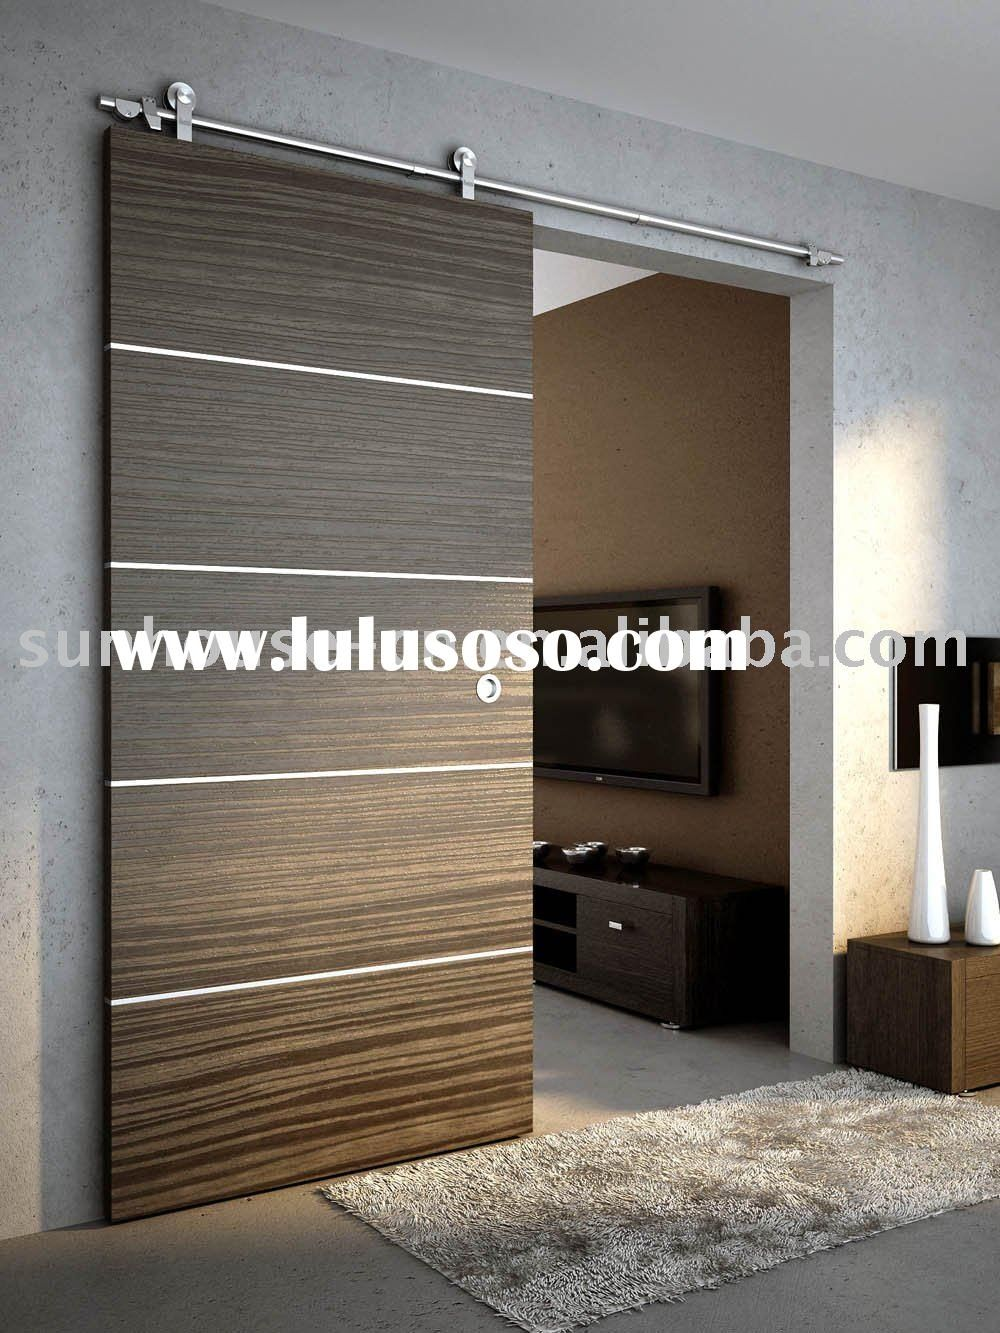 Interior sliding doors ikea - Wood Sliding Door Sliding Door Fitting